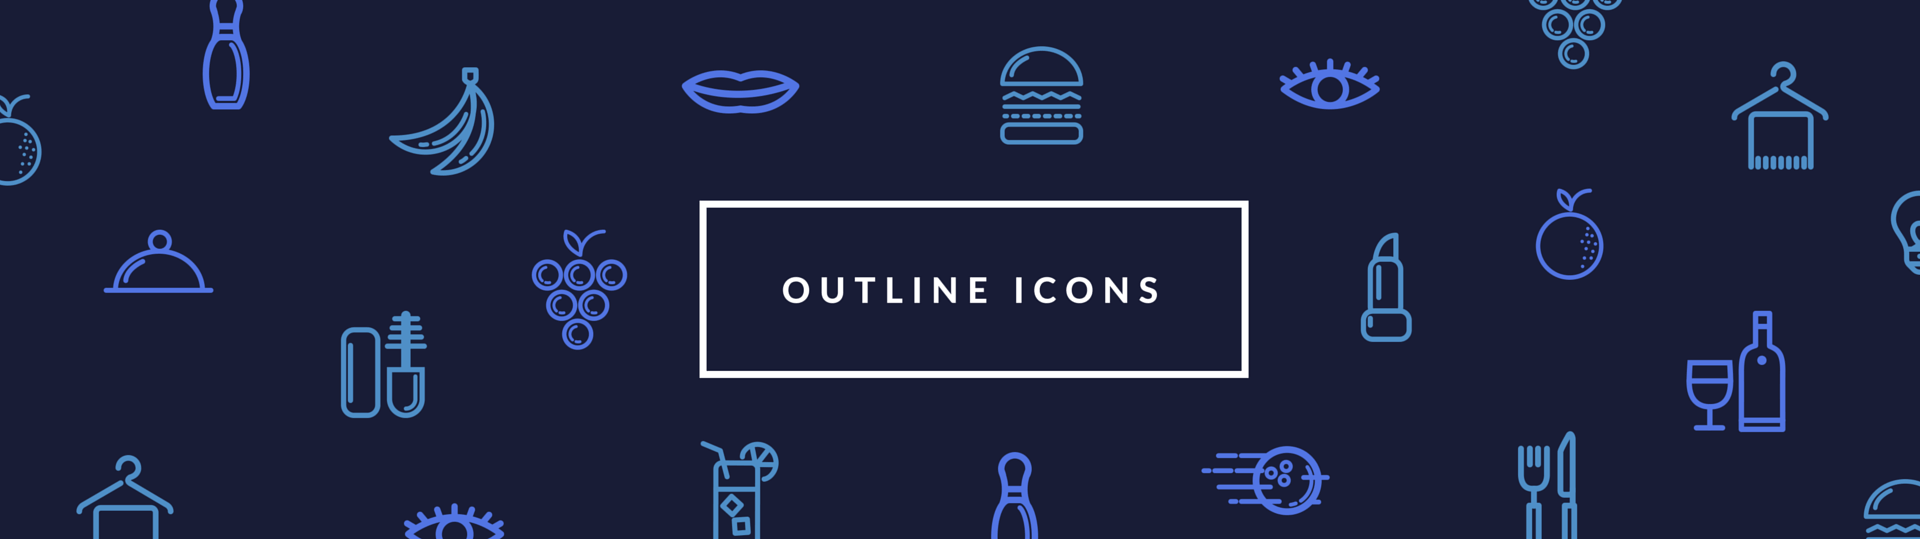 60 free outline icon sets perfect for contemporary designs.